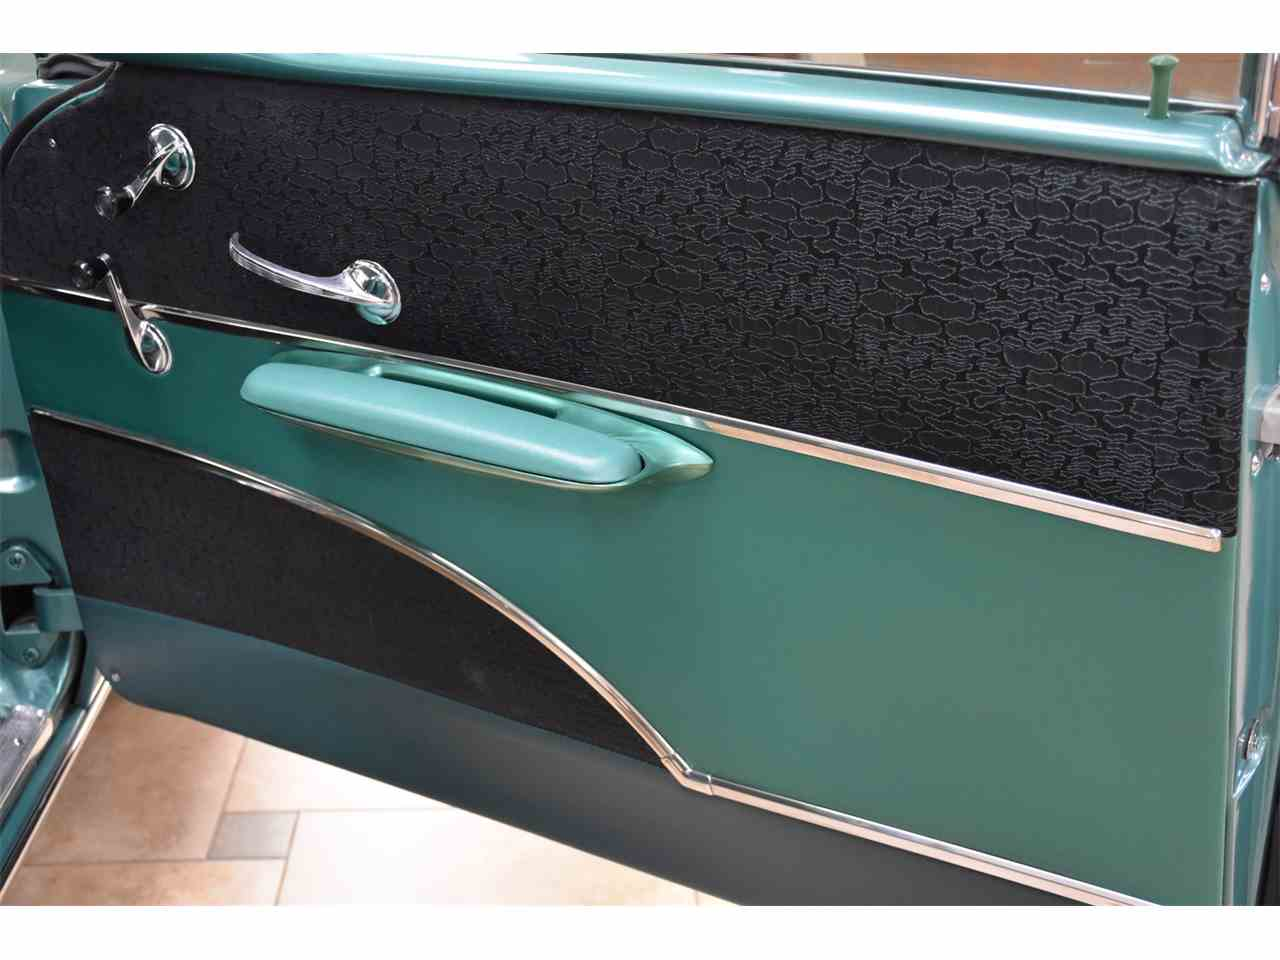 Large Picture of '57 Chevrolet Bel Air located in Florida Auction Vehicle - MH2G